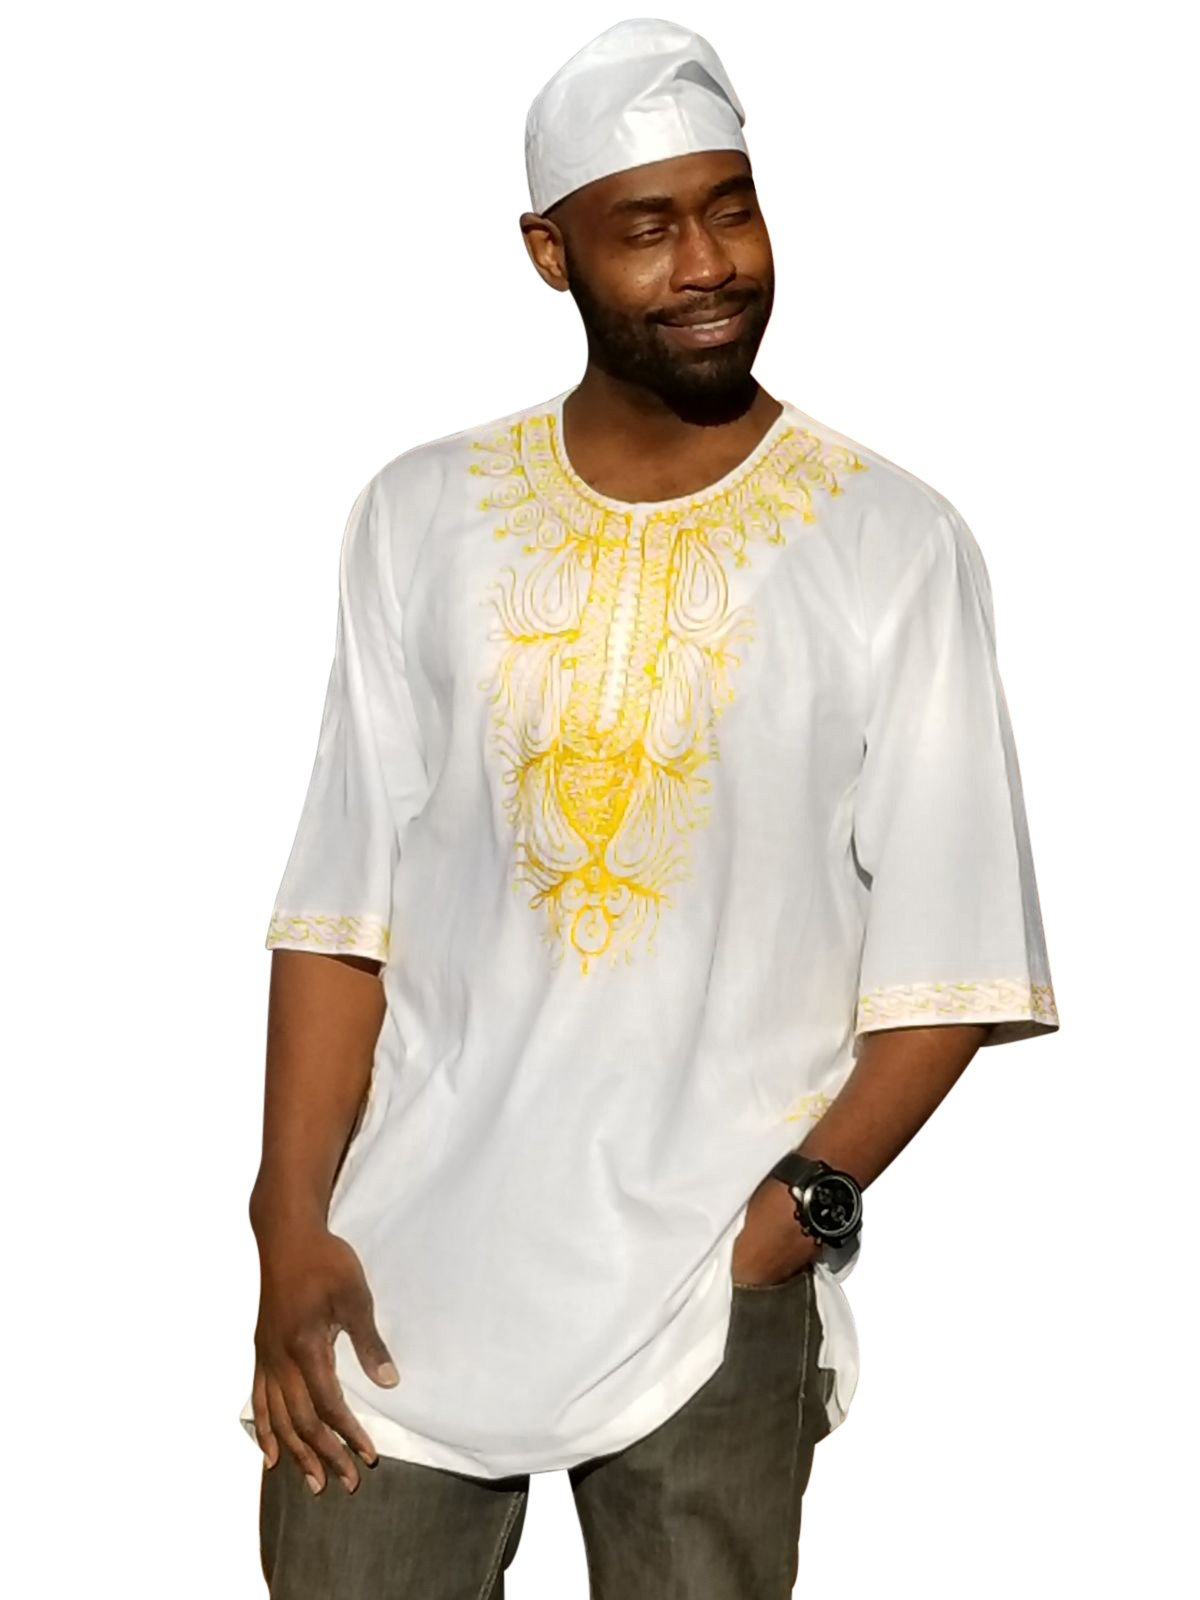 Off-White African Dashiki Shirt with Golden Orange Embroidery